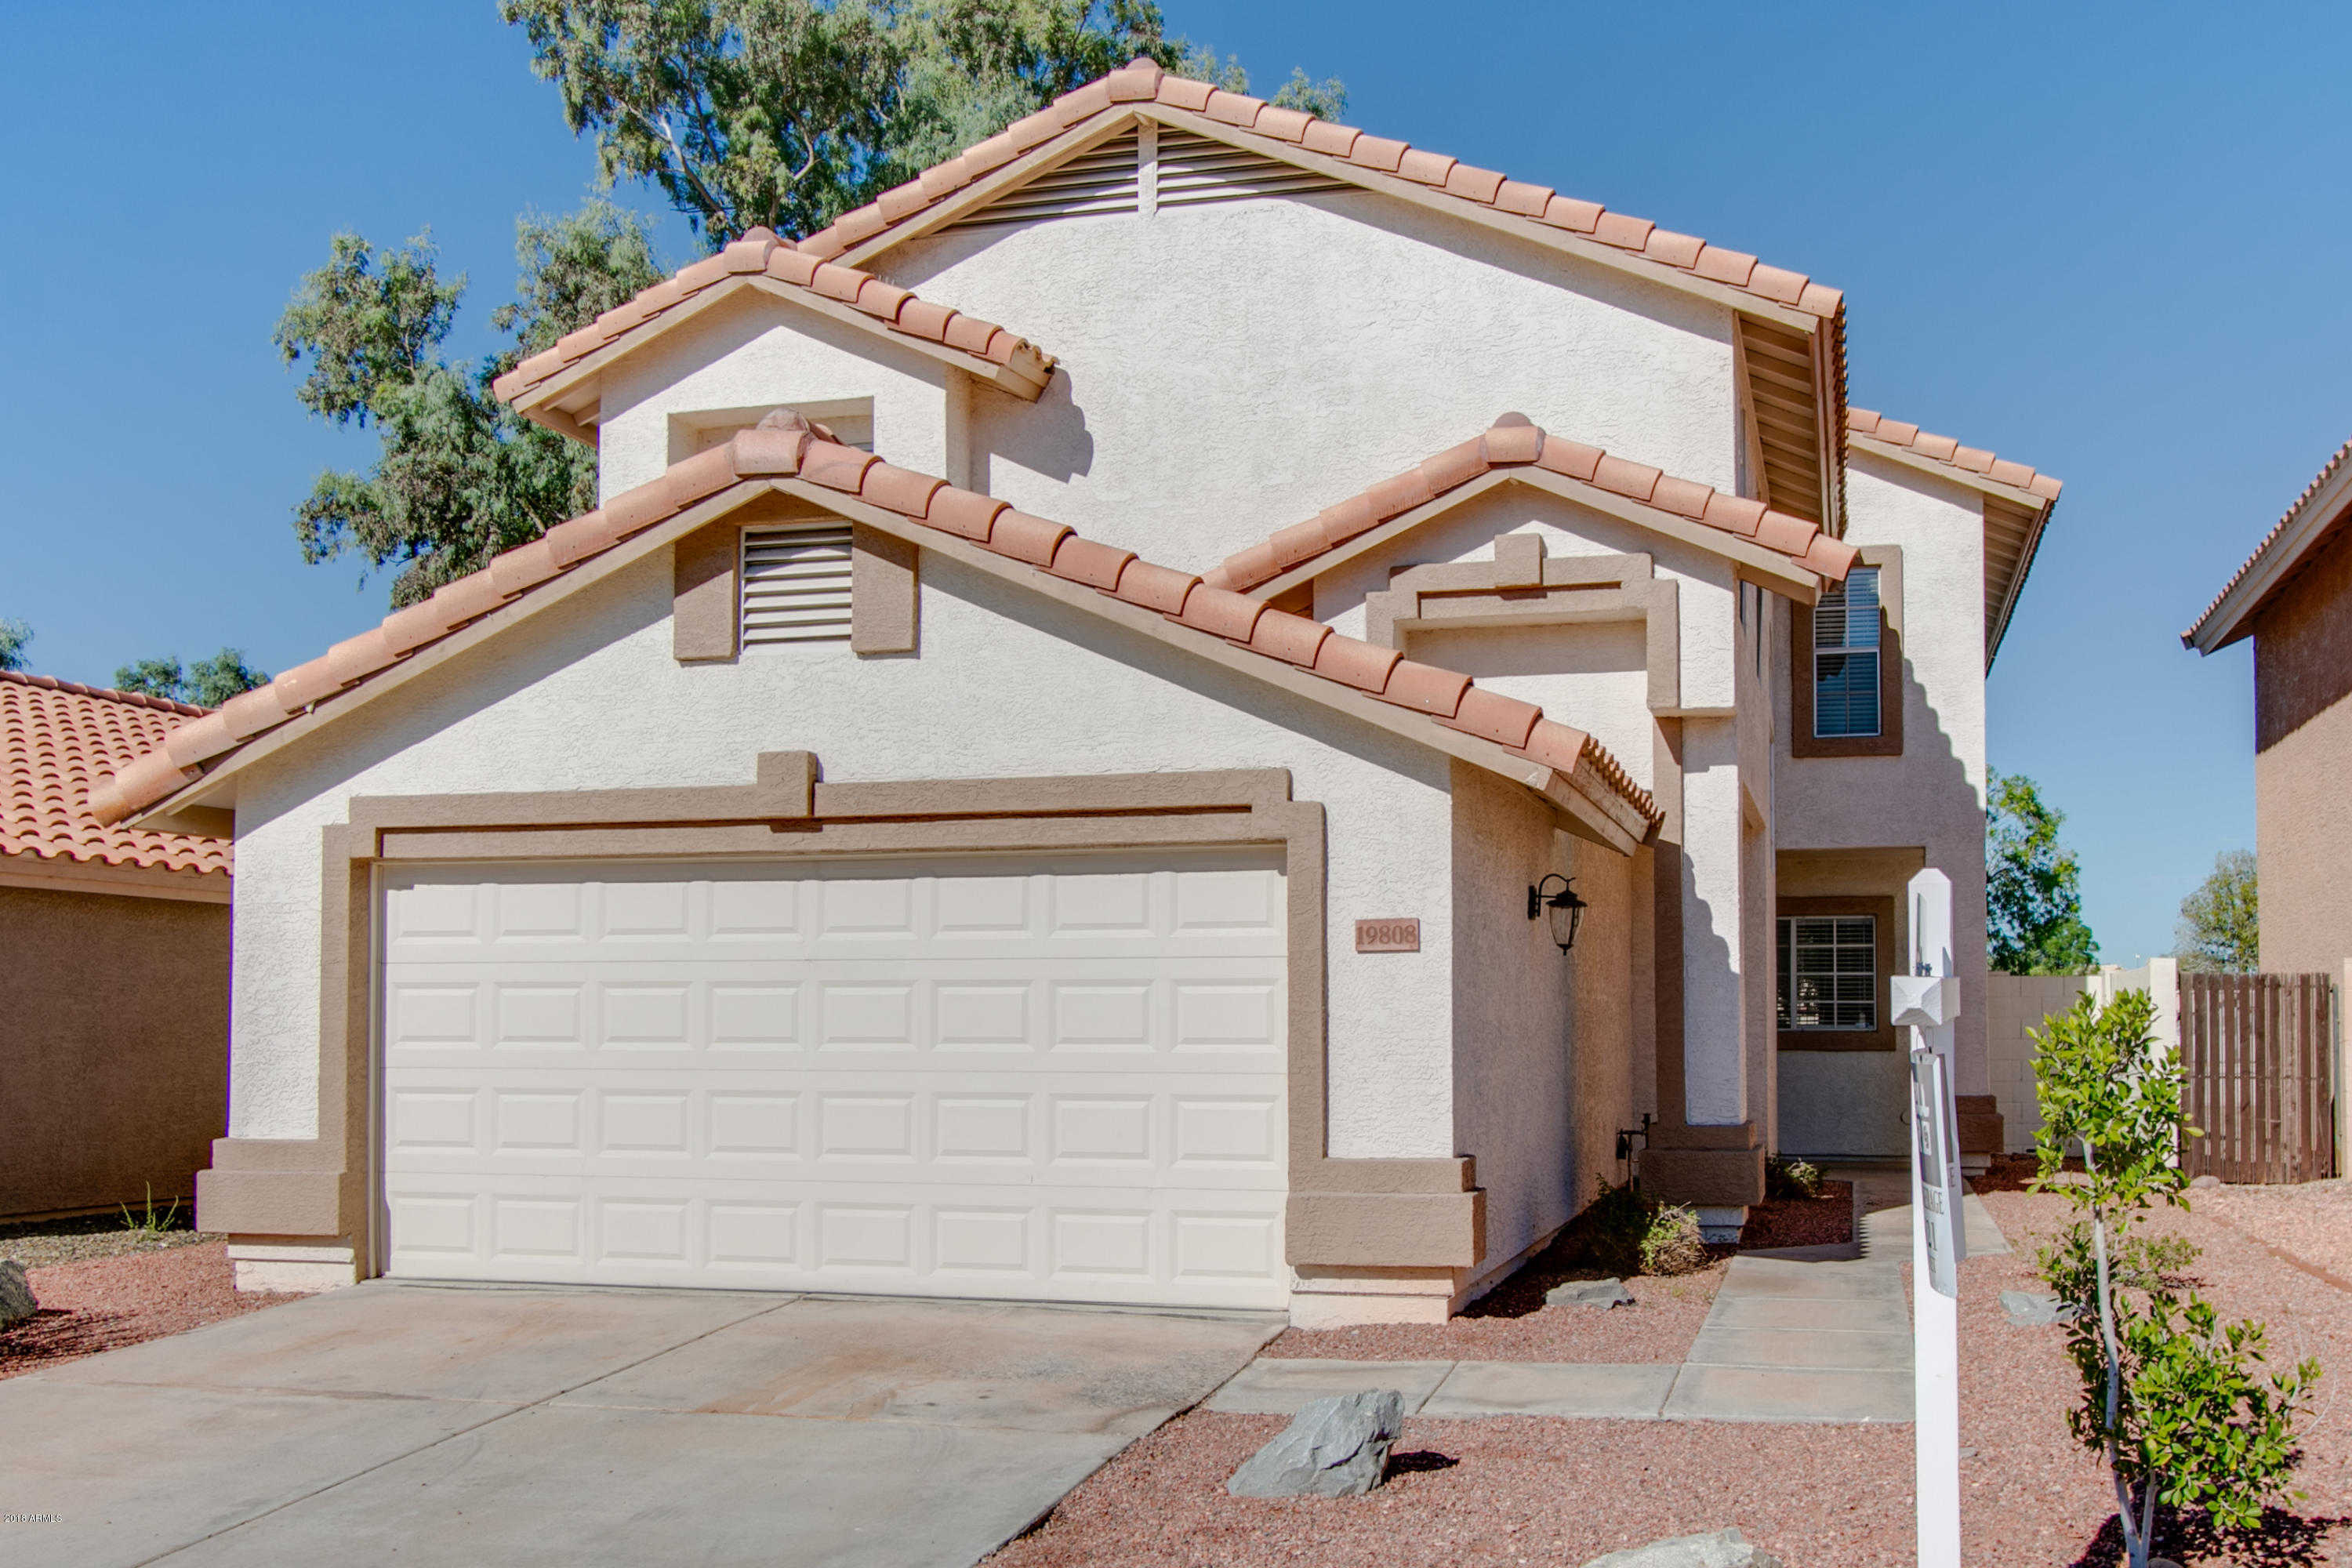 $319,990 - 4Br/3Ba - Home for Sale in Arrowhead On The Green Lot 1-325 Tr A-c, Glendale